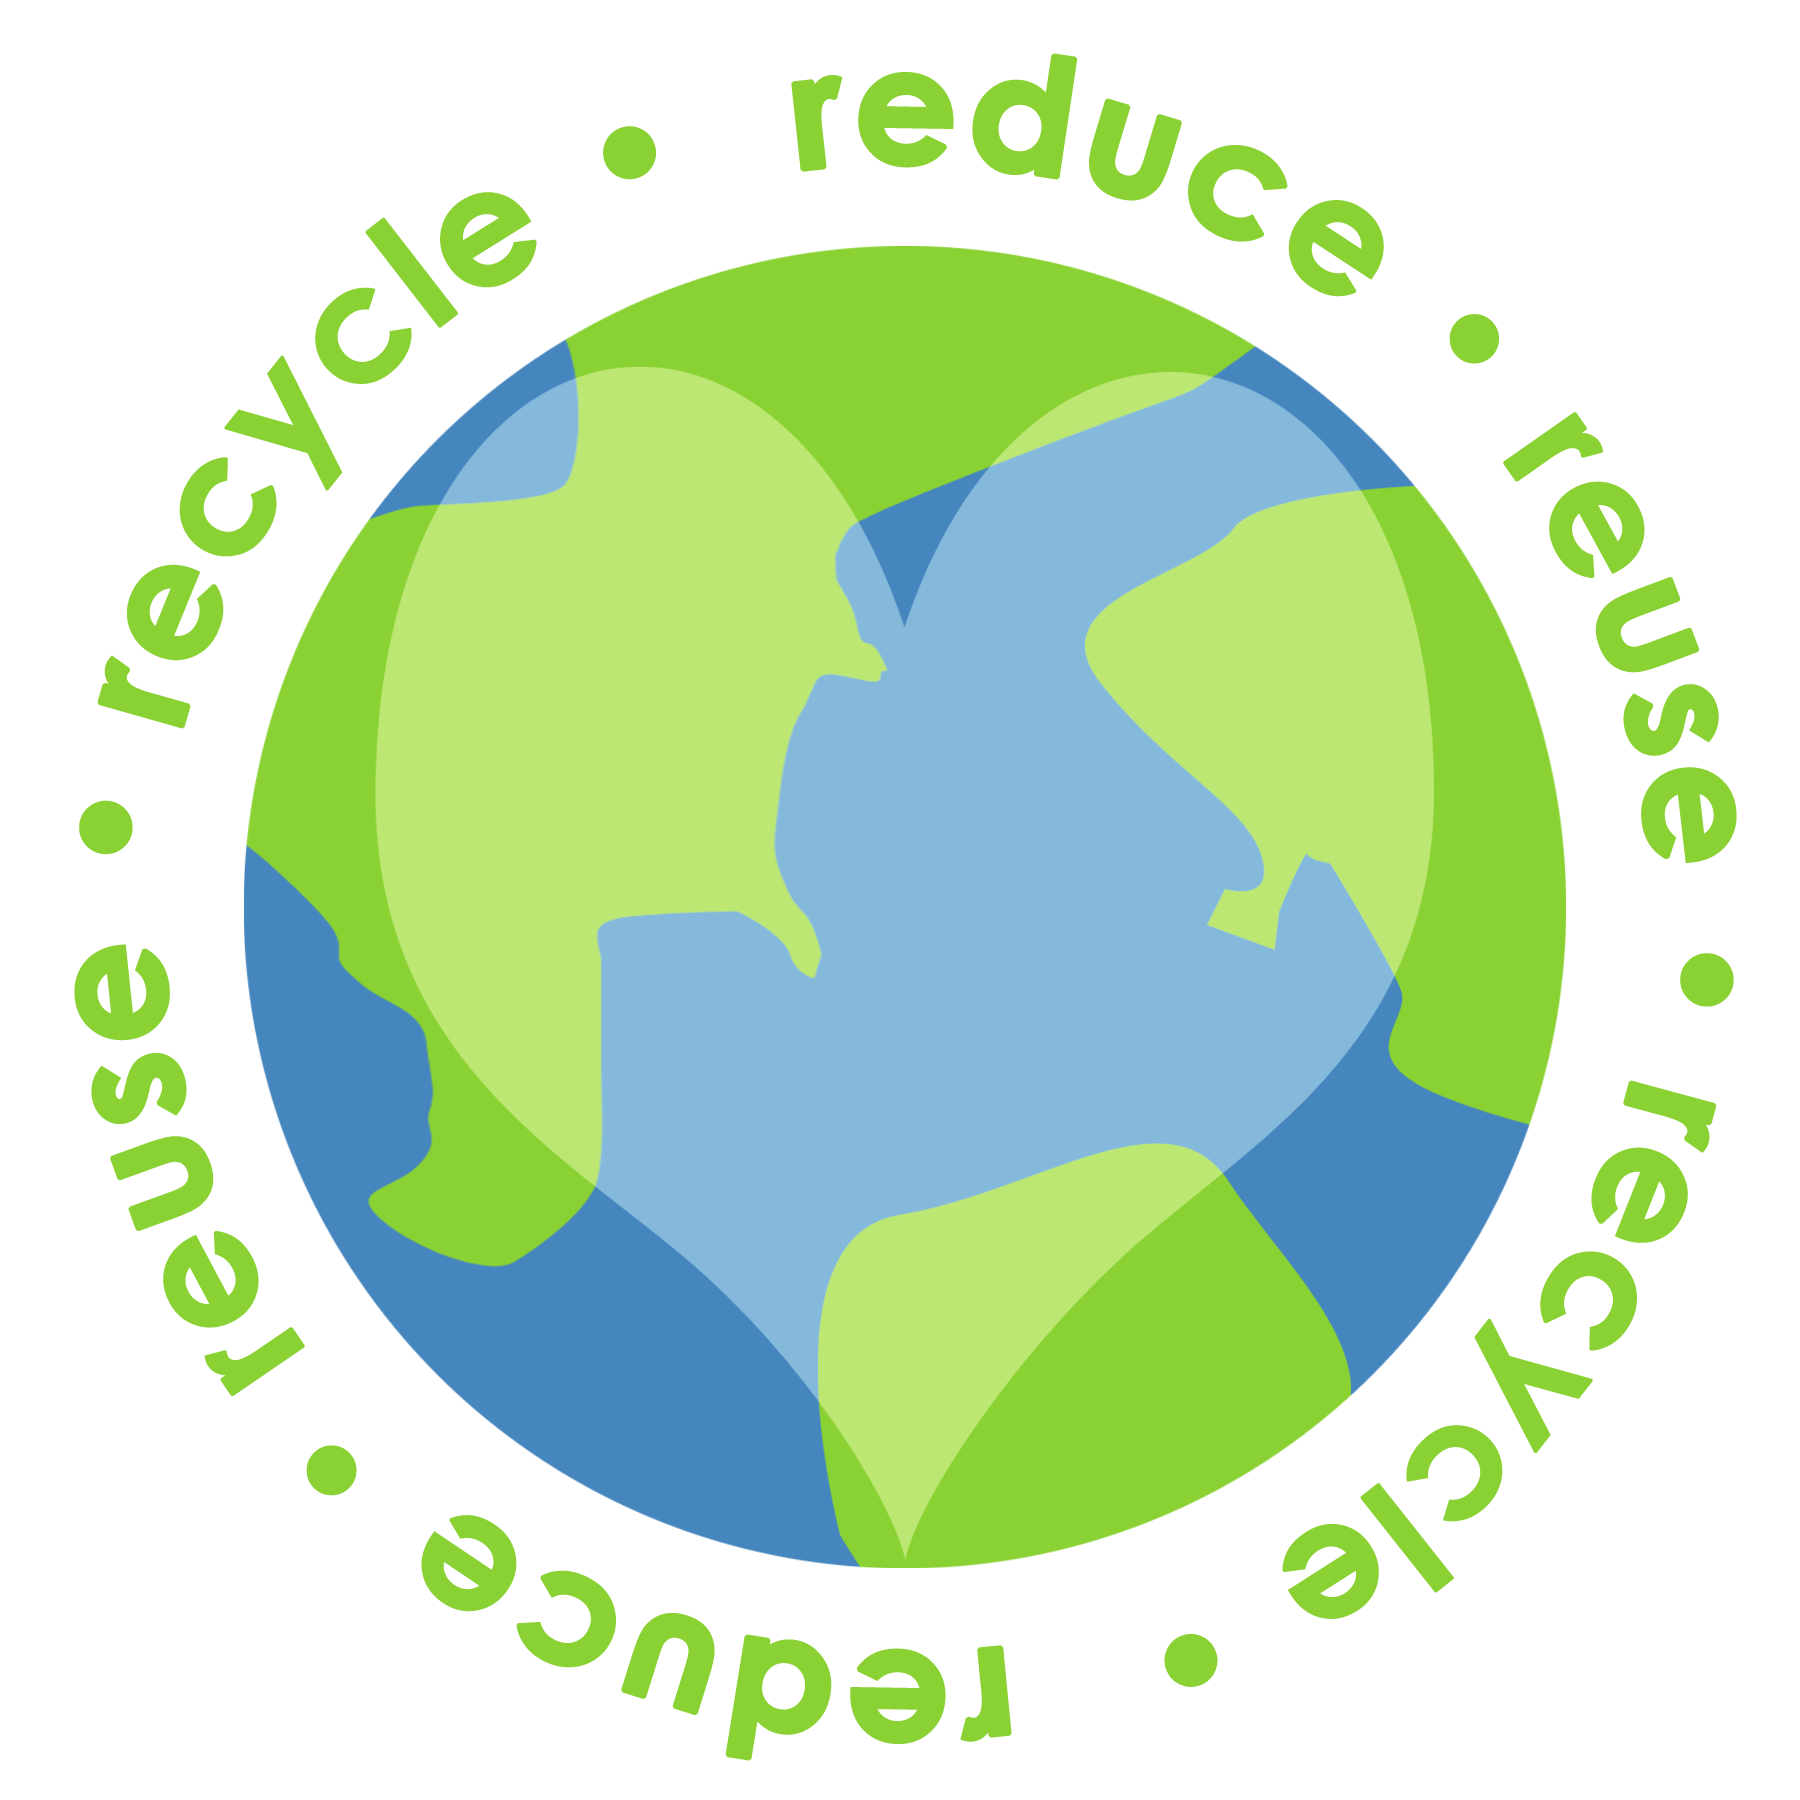 recycling reducing reusing Learn how reducing, reusing, and recycling can help you, your community, and the environment by saving money, energy, and natural resources recycling programs are.